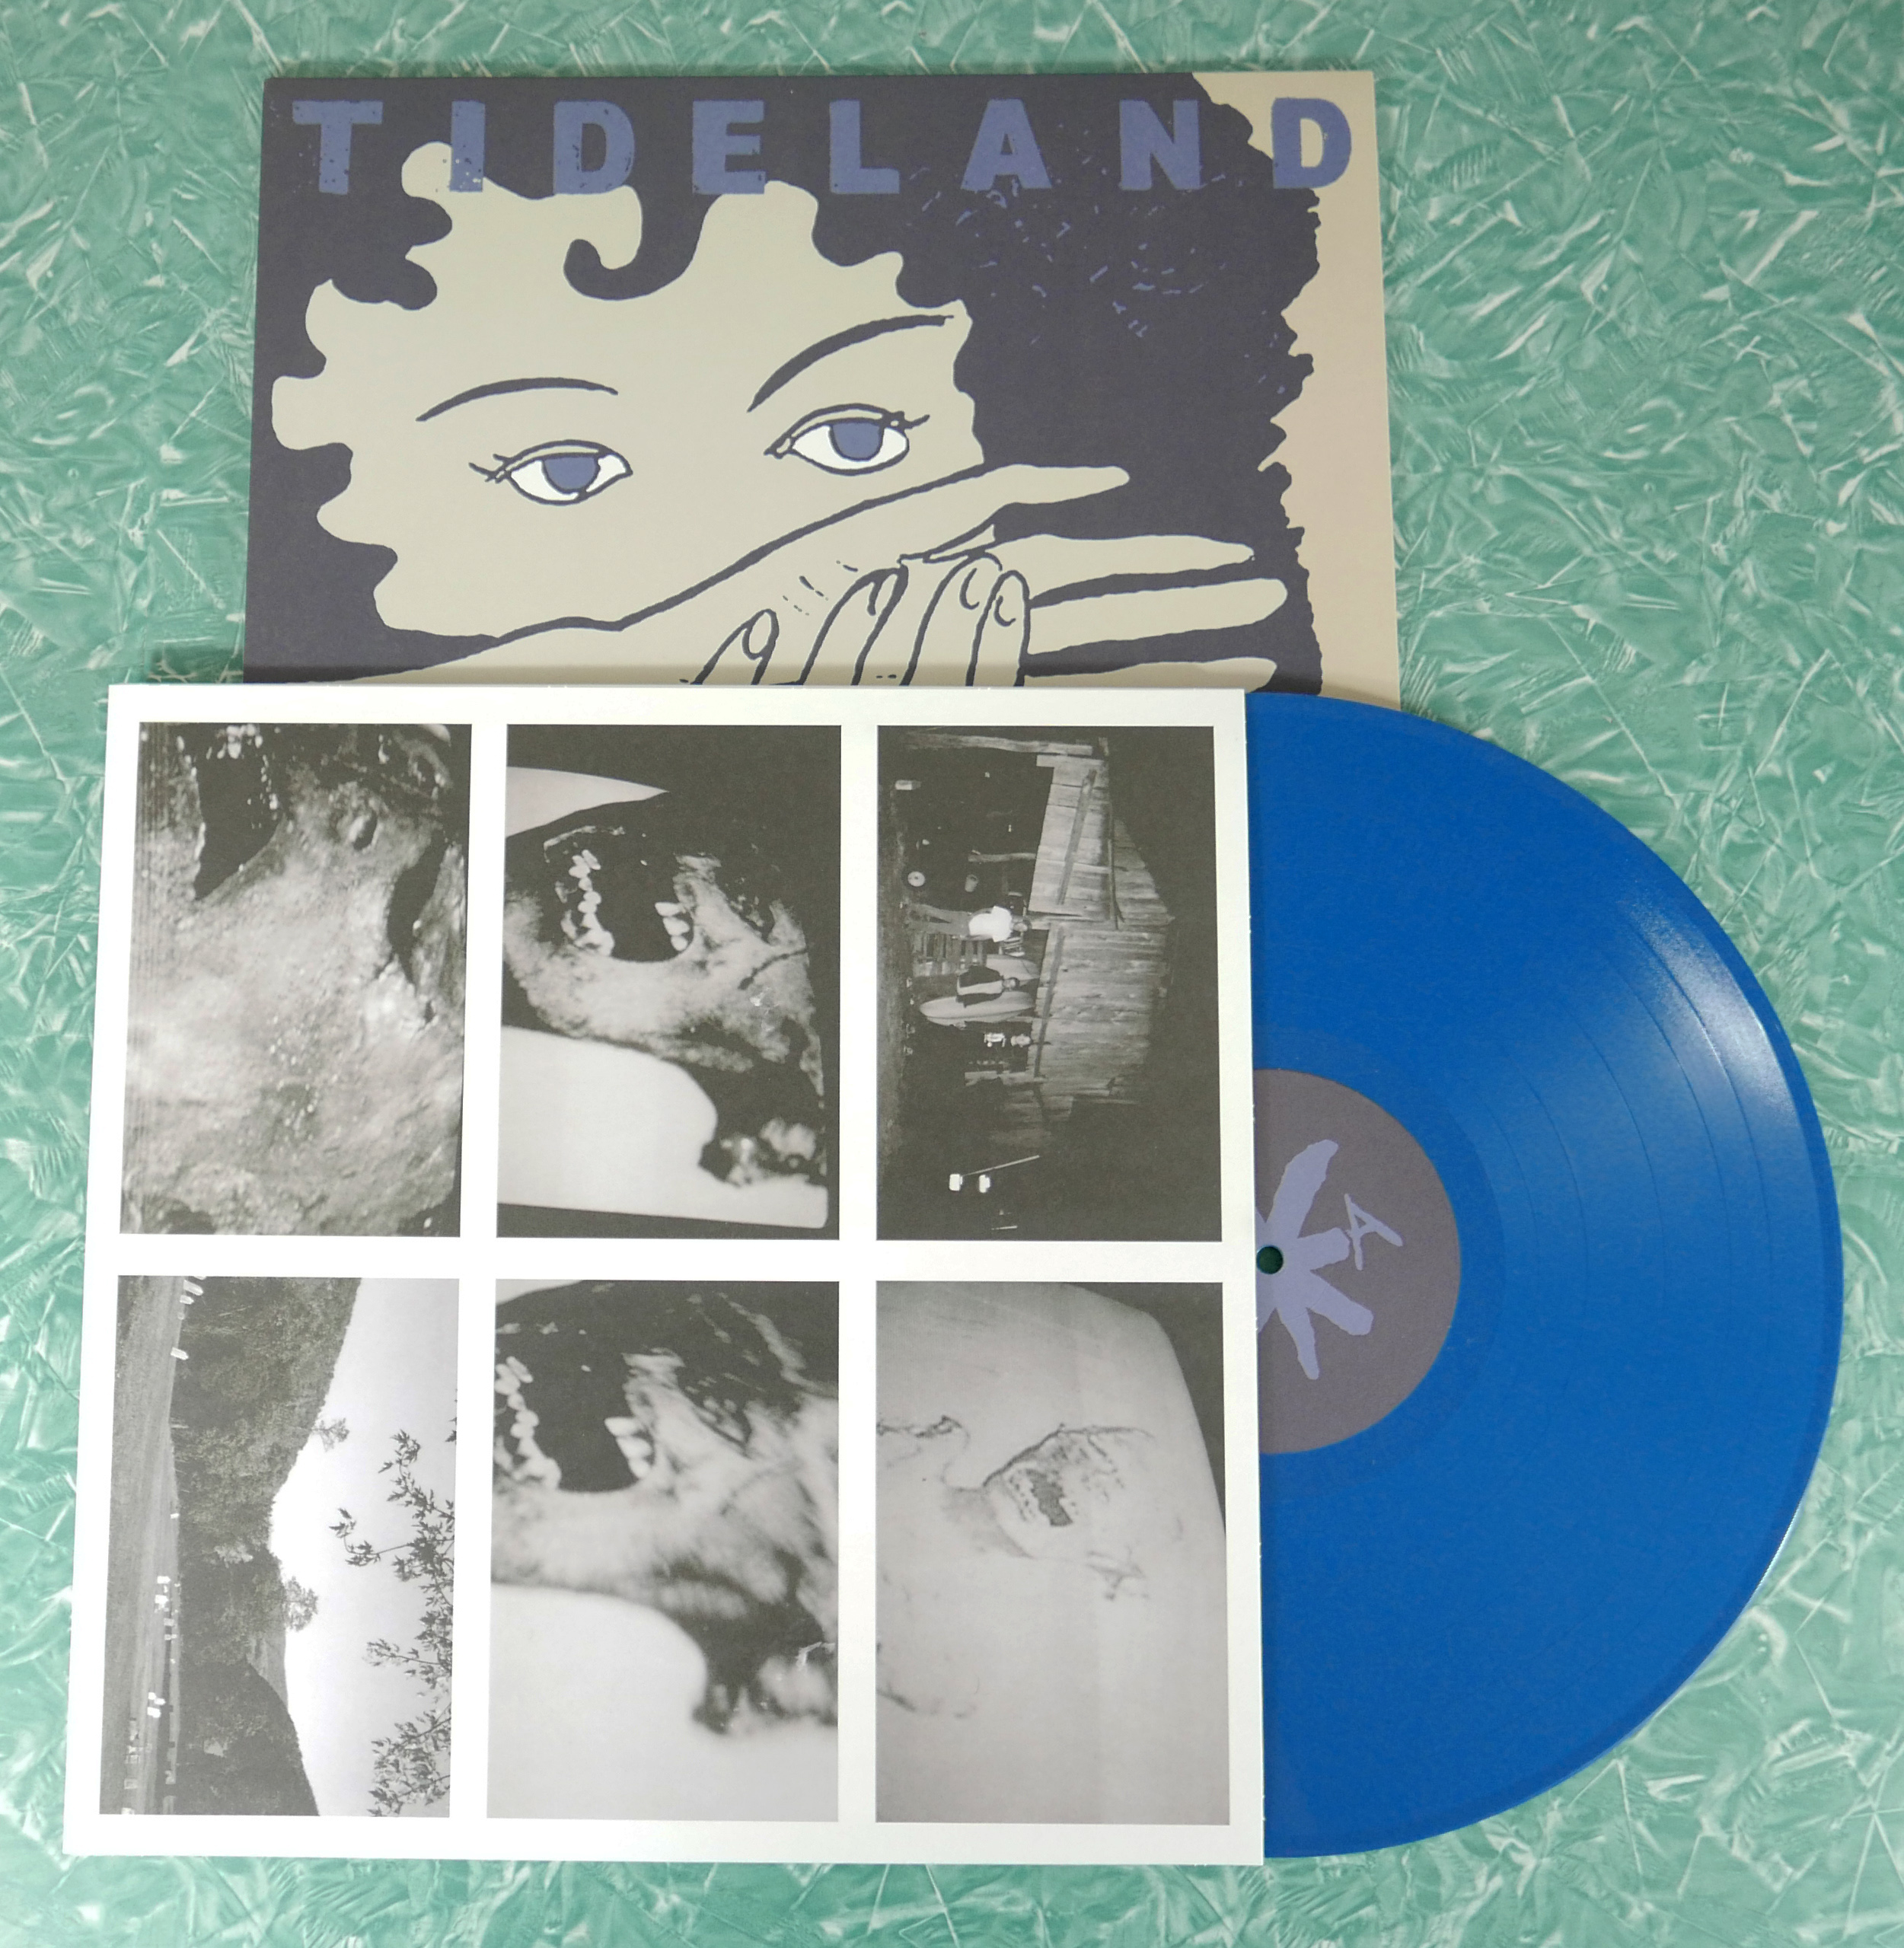 Tideland - Asleep In The Graveyard 12